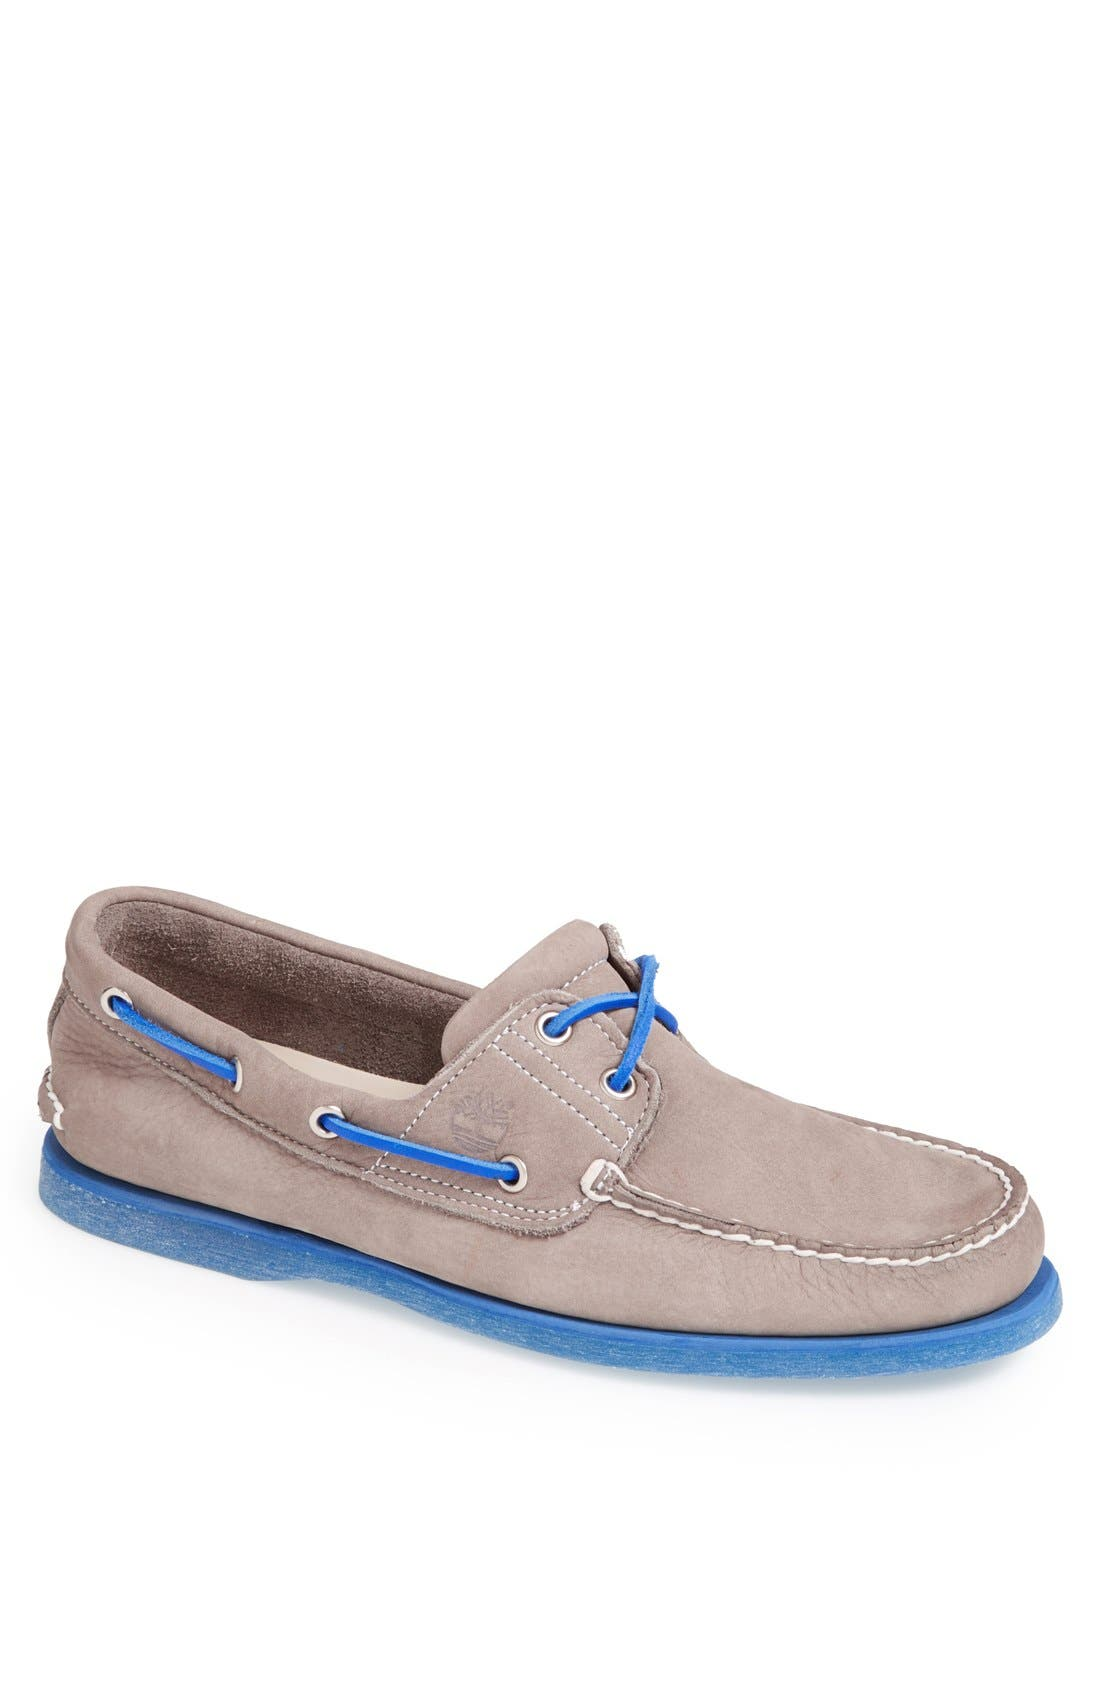 Alternate Image 1 Selected - Timberland 'Icon' Boat Shoe